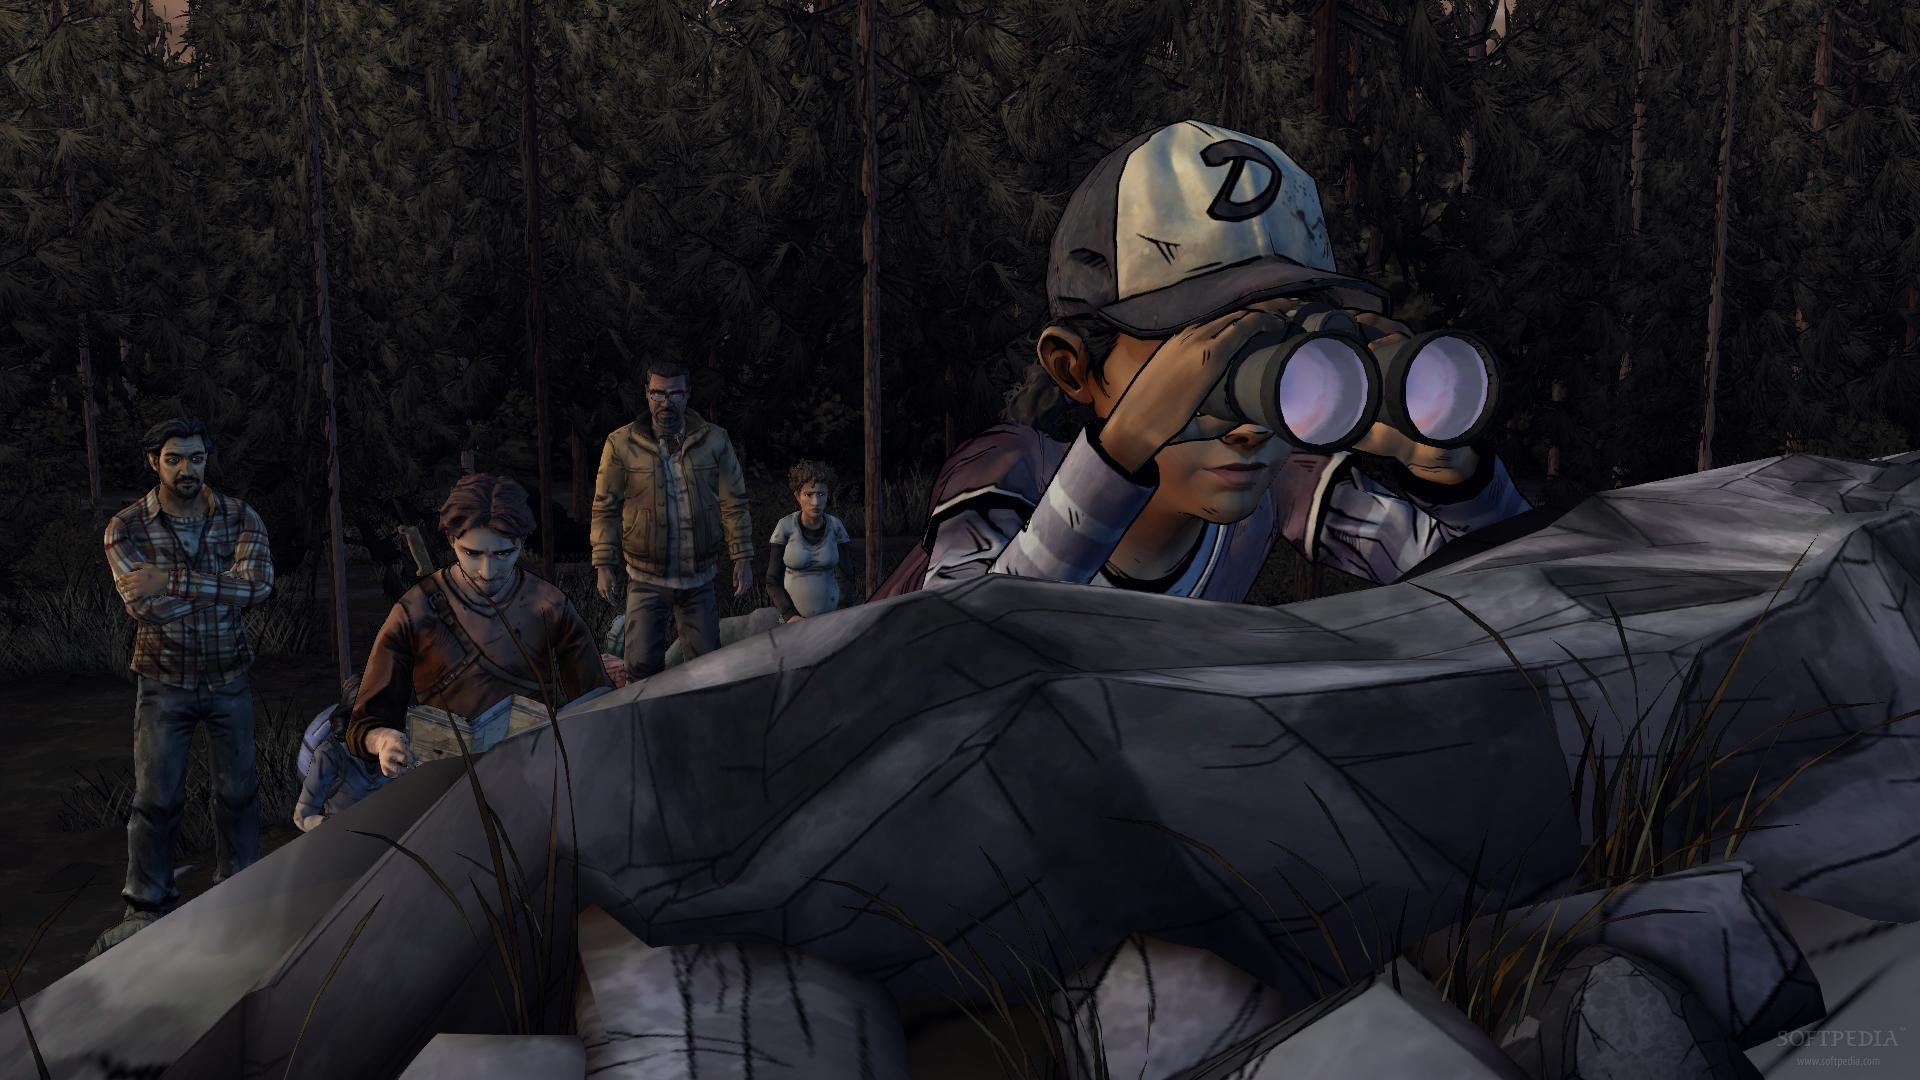 The Walking Dead Season 2: A House Divided review (XBLA DLC)